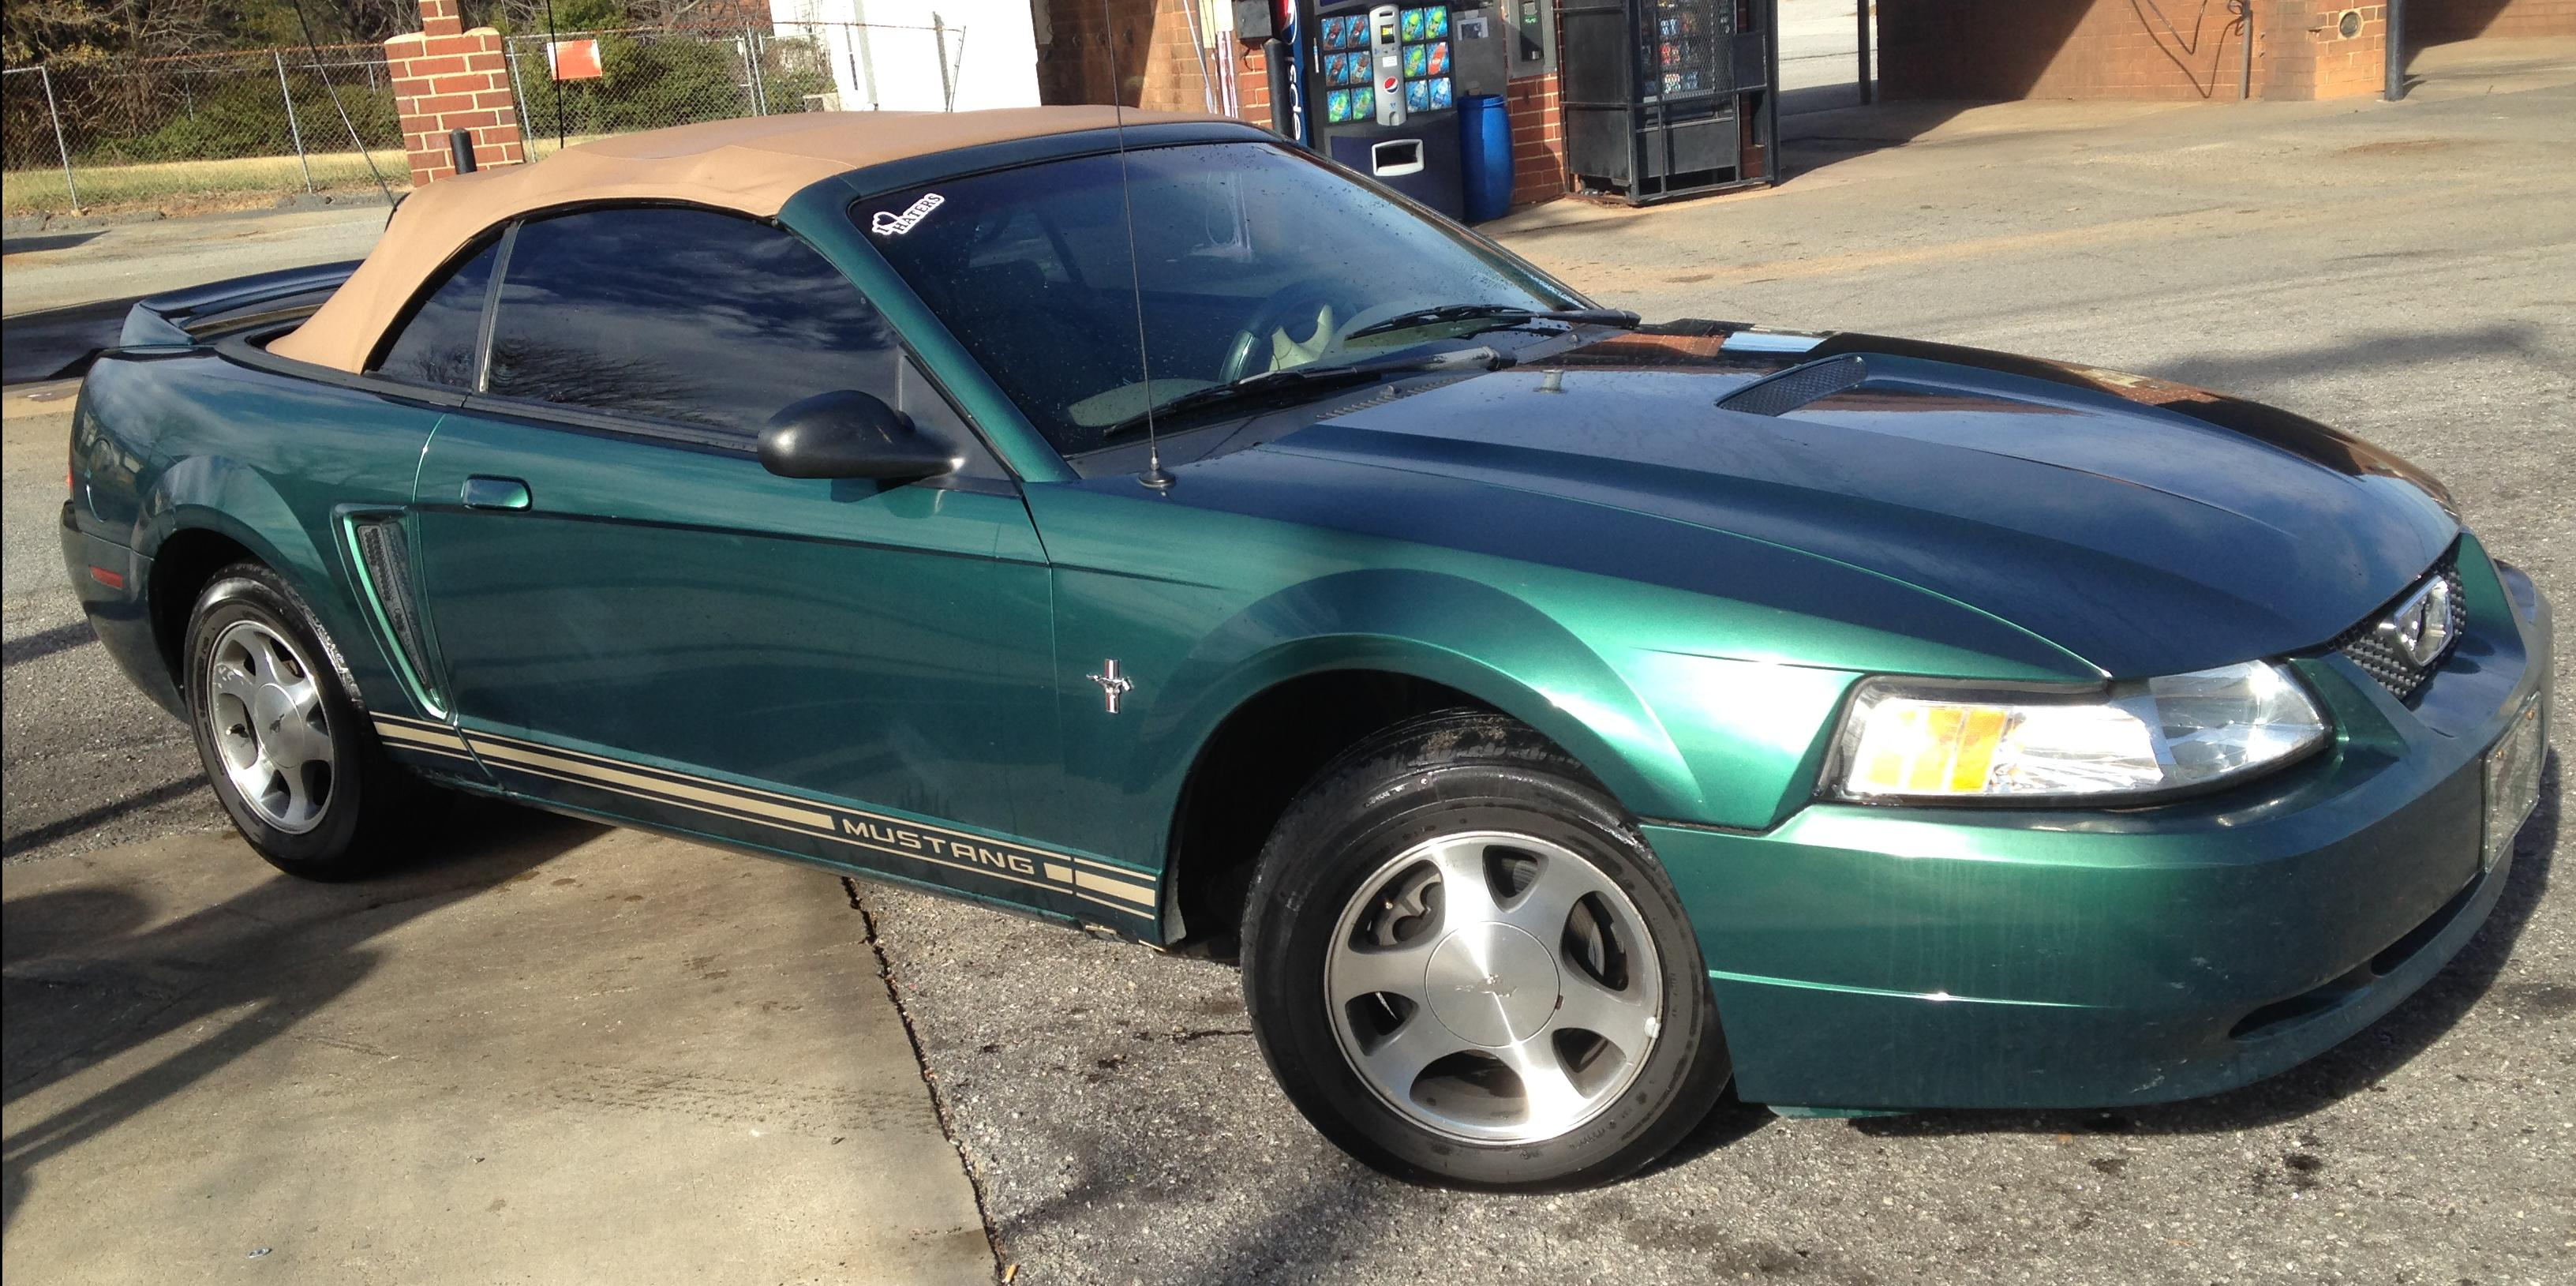 Tyler Tessnear 2000 Ford Mustang